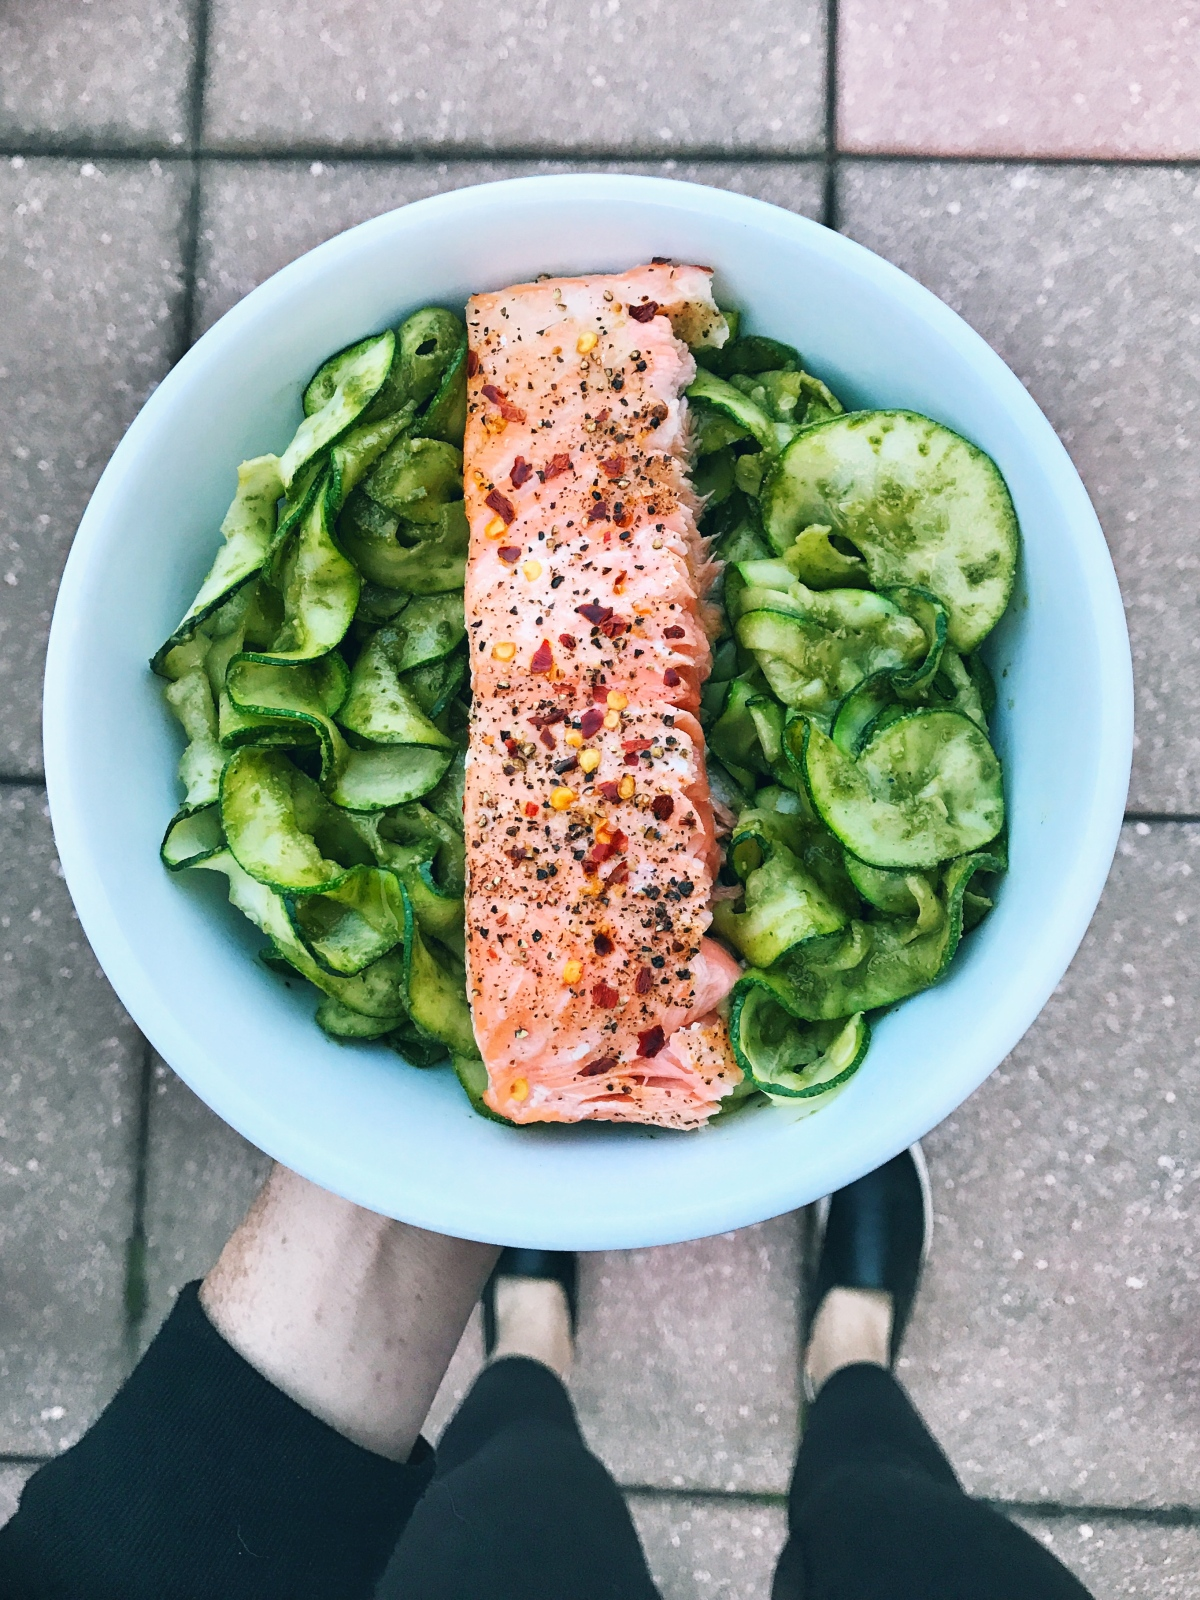 Zucchini Noodles with Creamy Avocado Pesto and Spicy Coconut Salmon